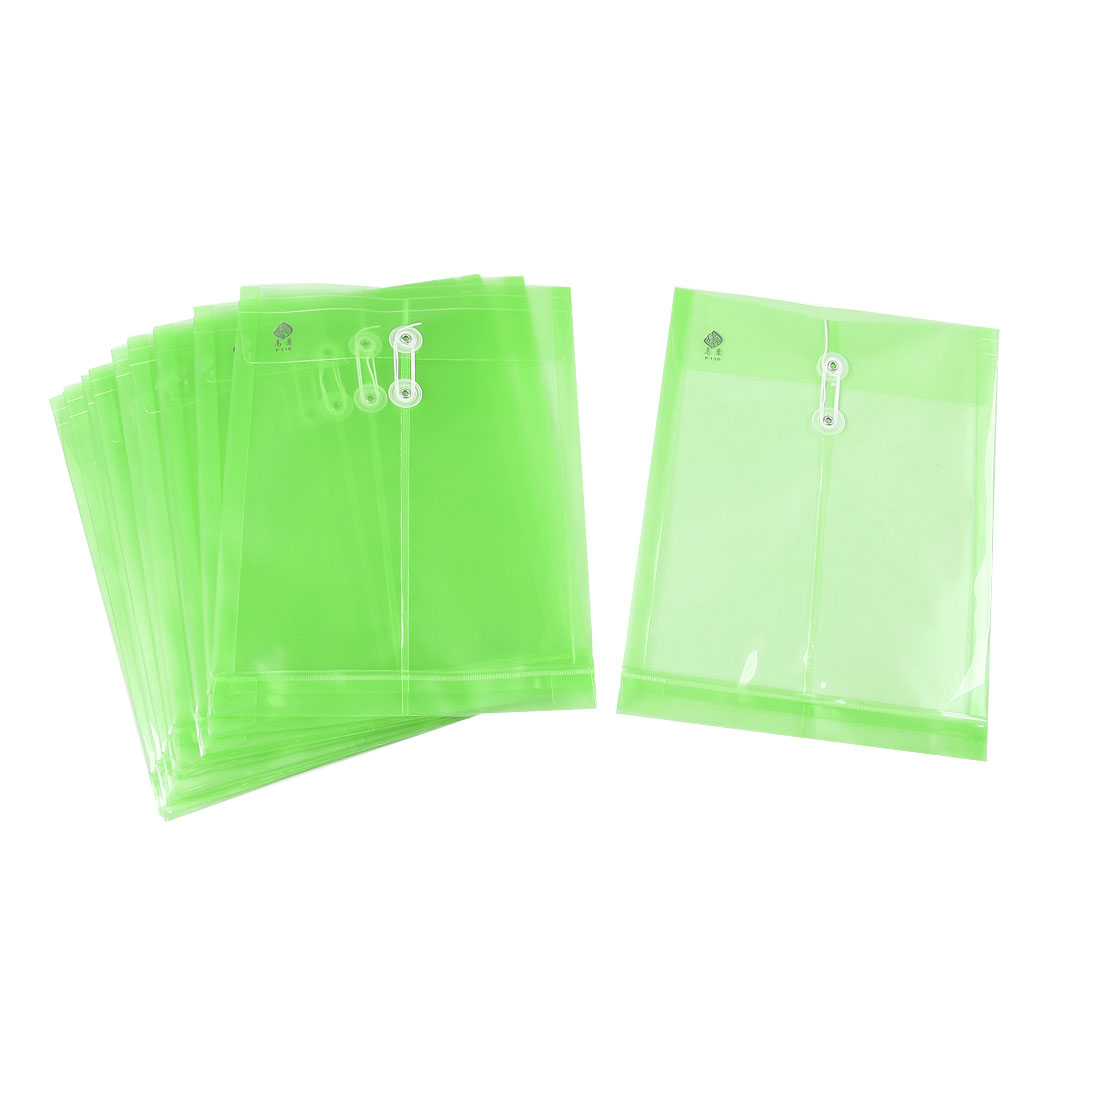 10 Pcs Green A4 Paper Documents File Folders w String Fastener